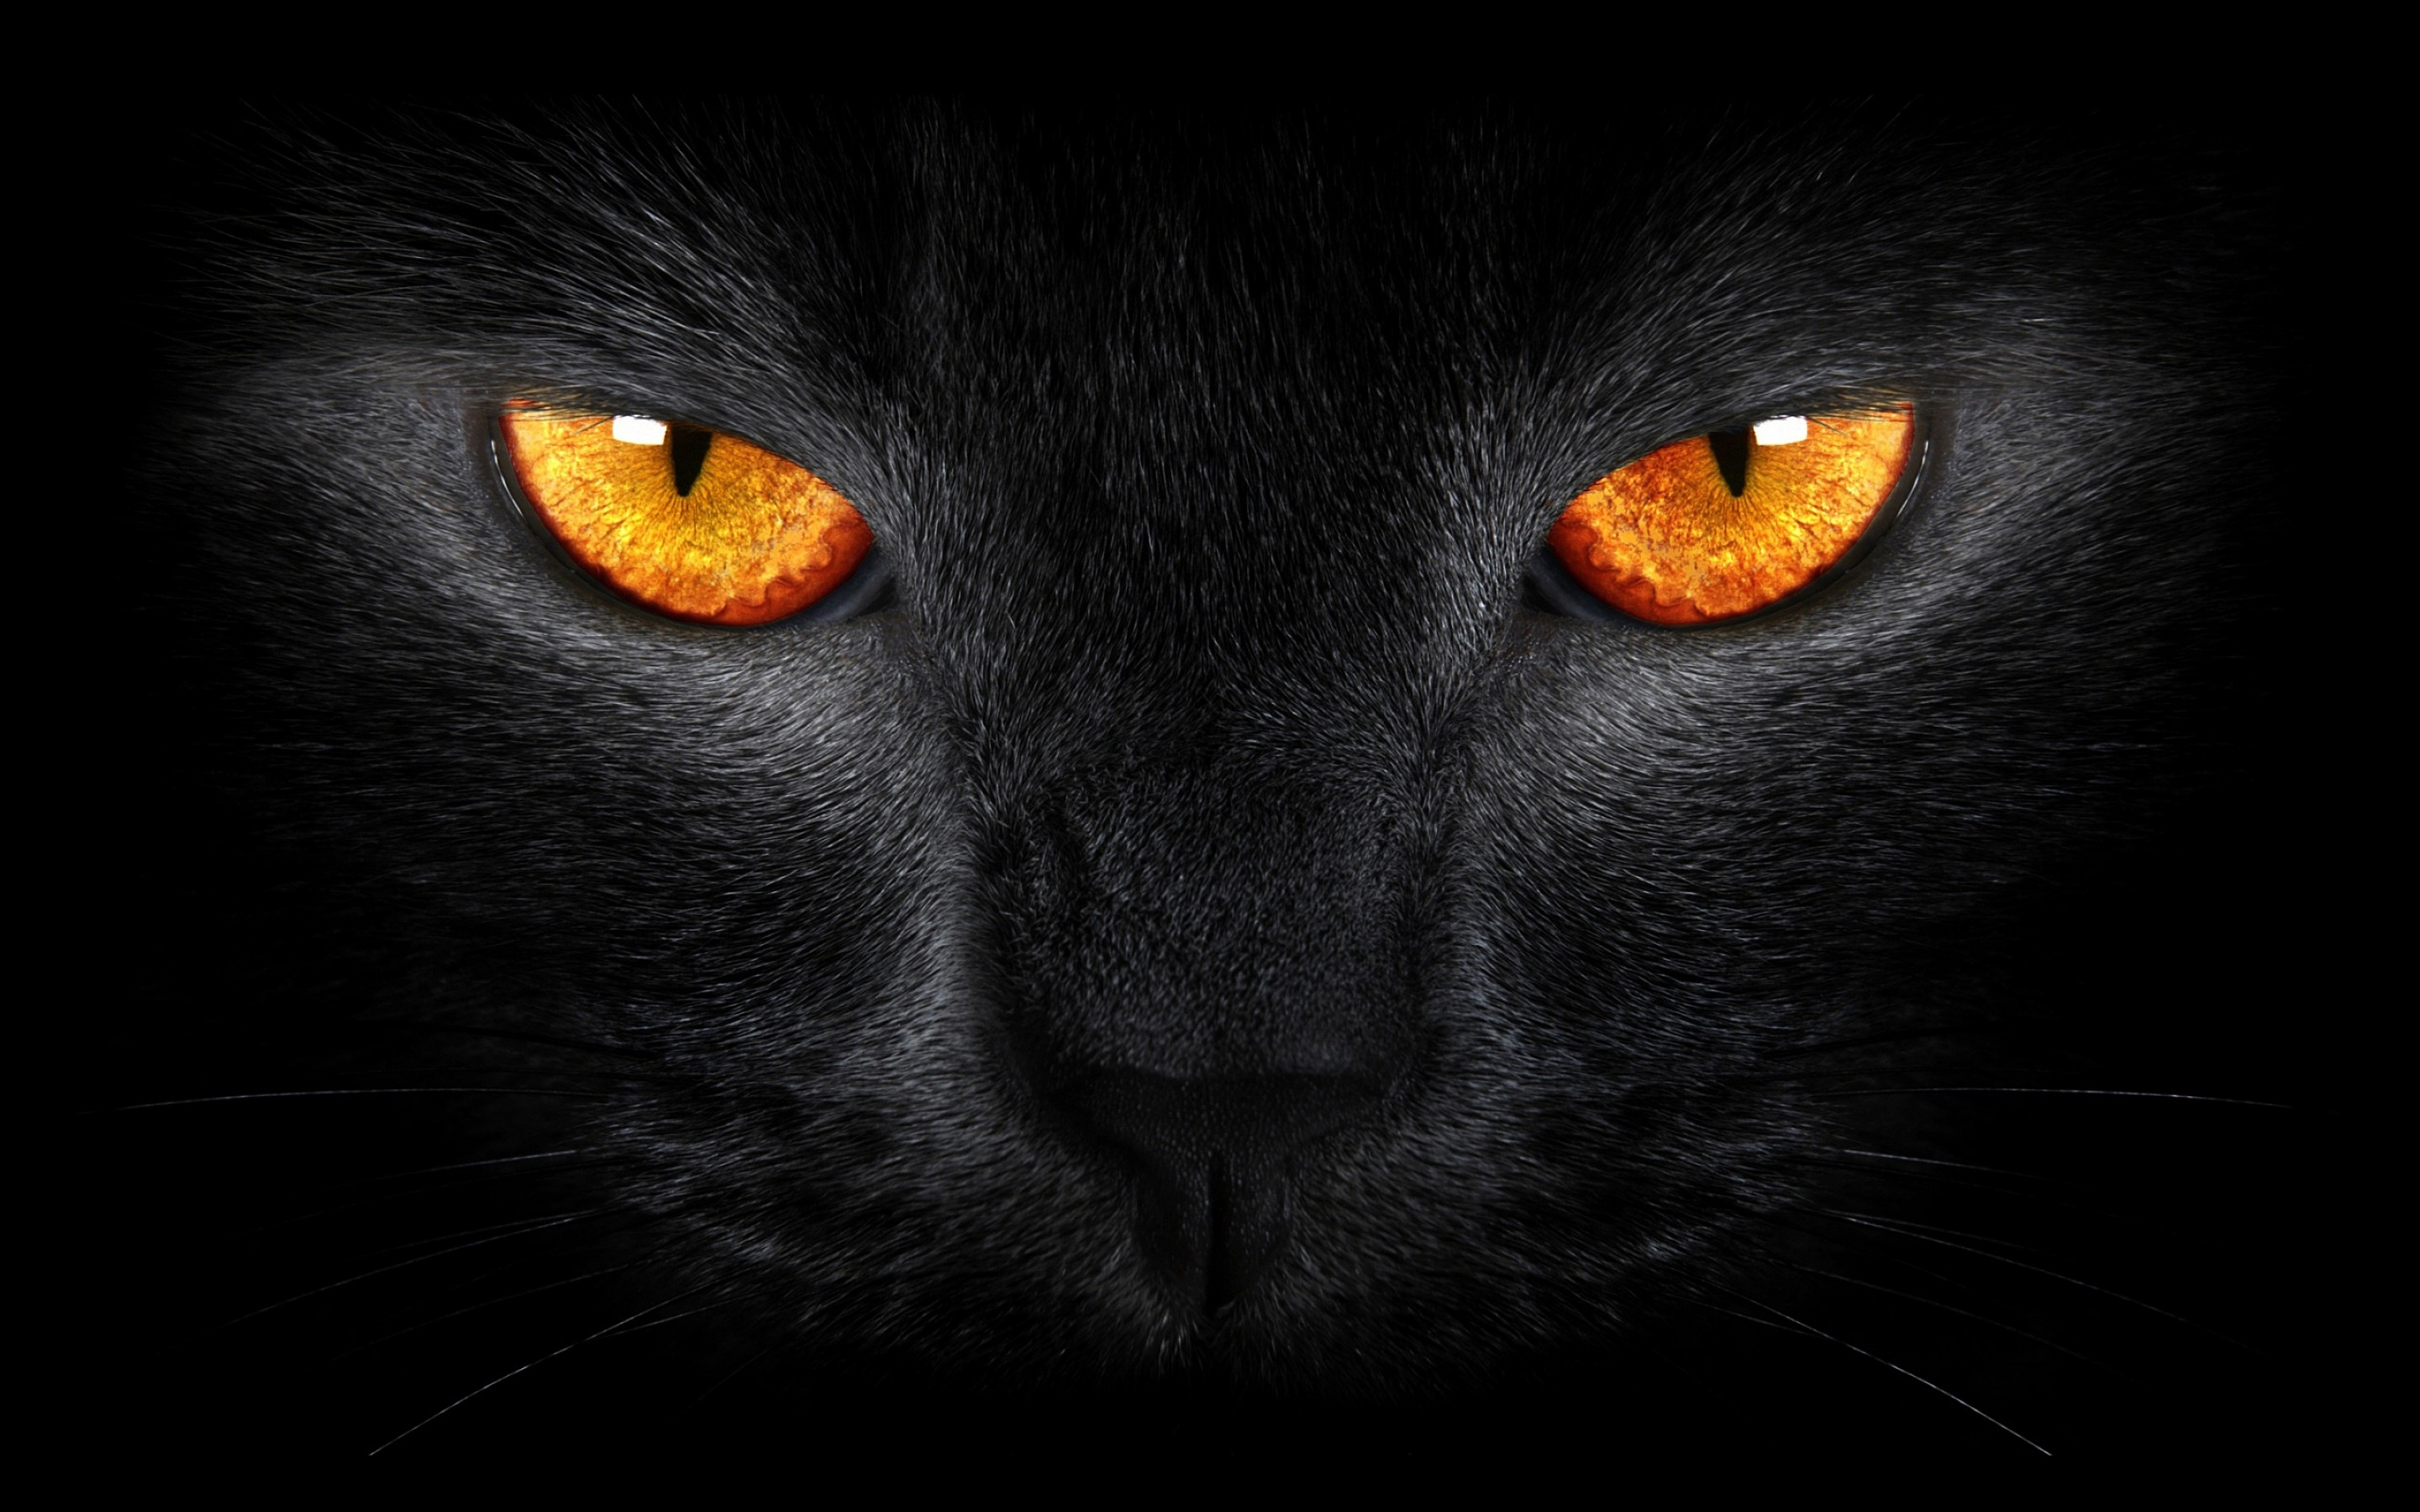 The Demonization Of Cats